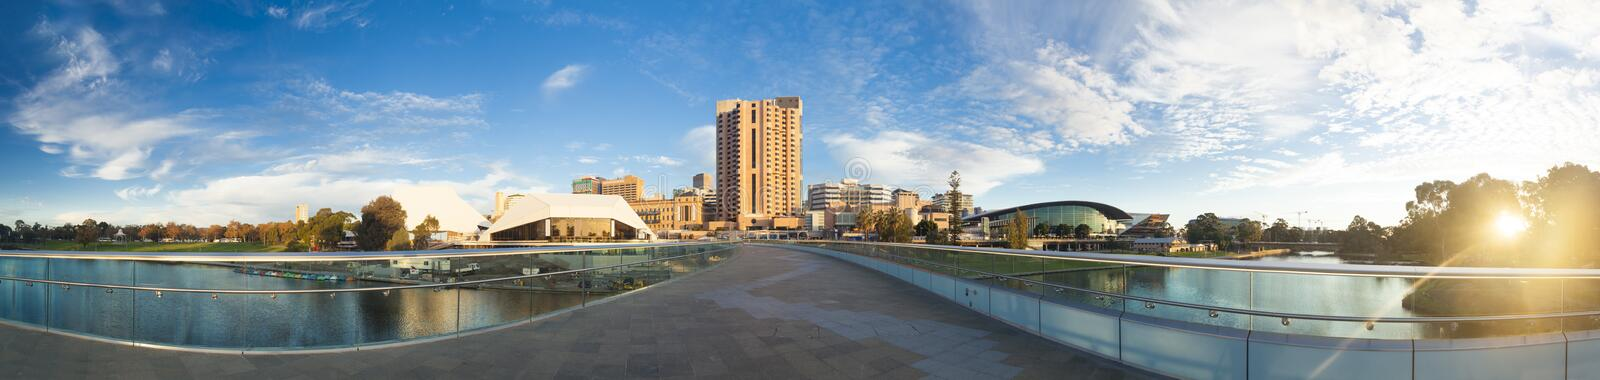 Adelaide city in Australia at sunset. Downtown area of Adelaide city in Australia at sunset royalty free stock images